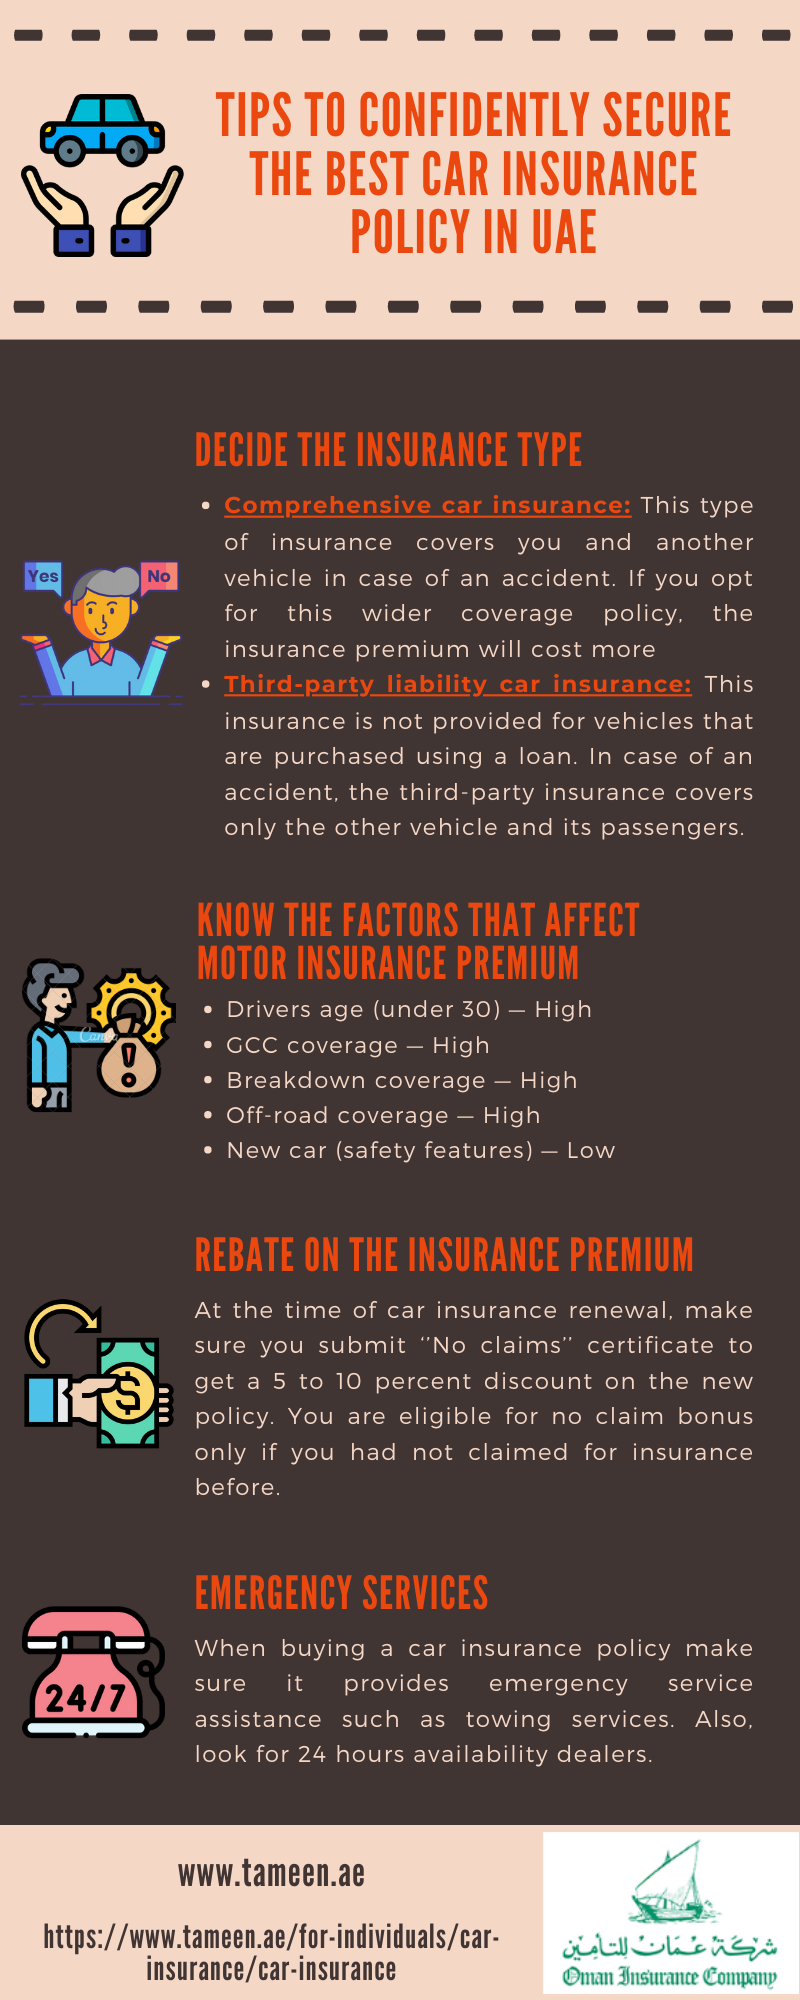 Tips to Confidently Secure the Best Car Insurance Policy